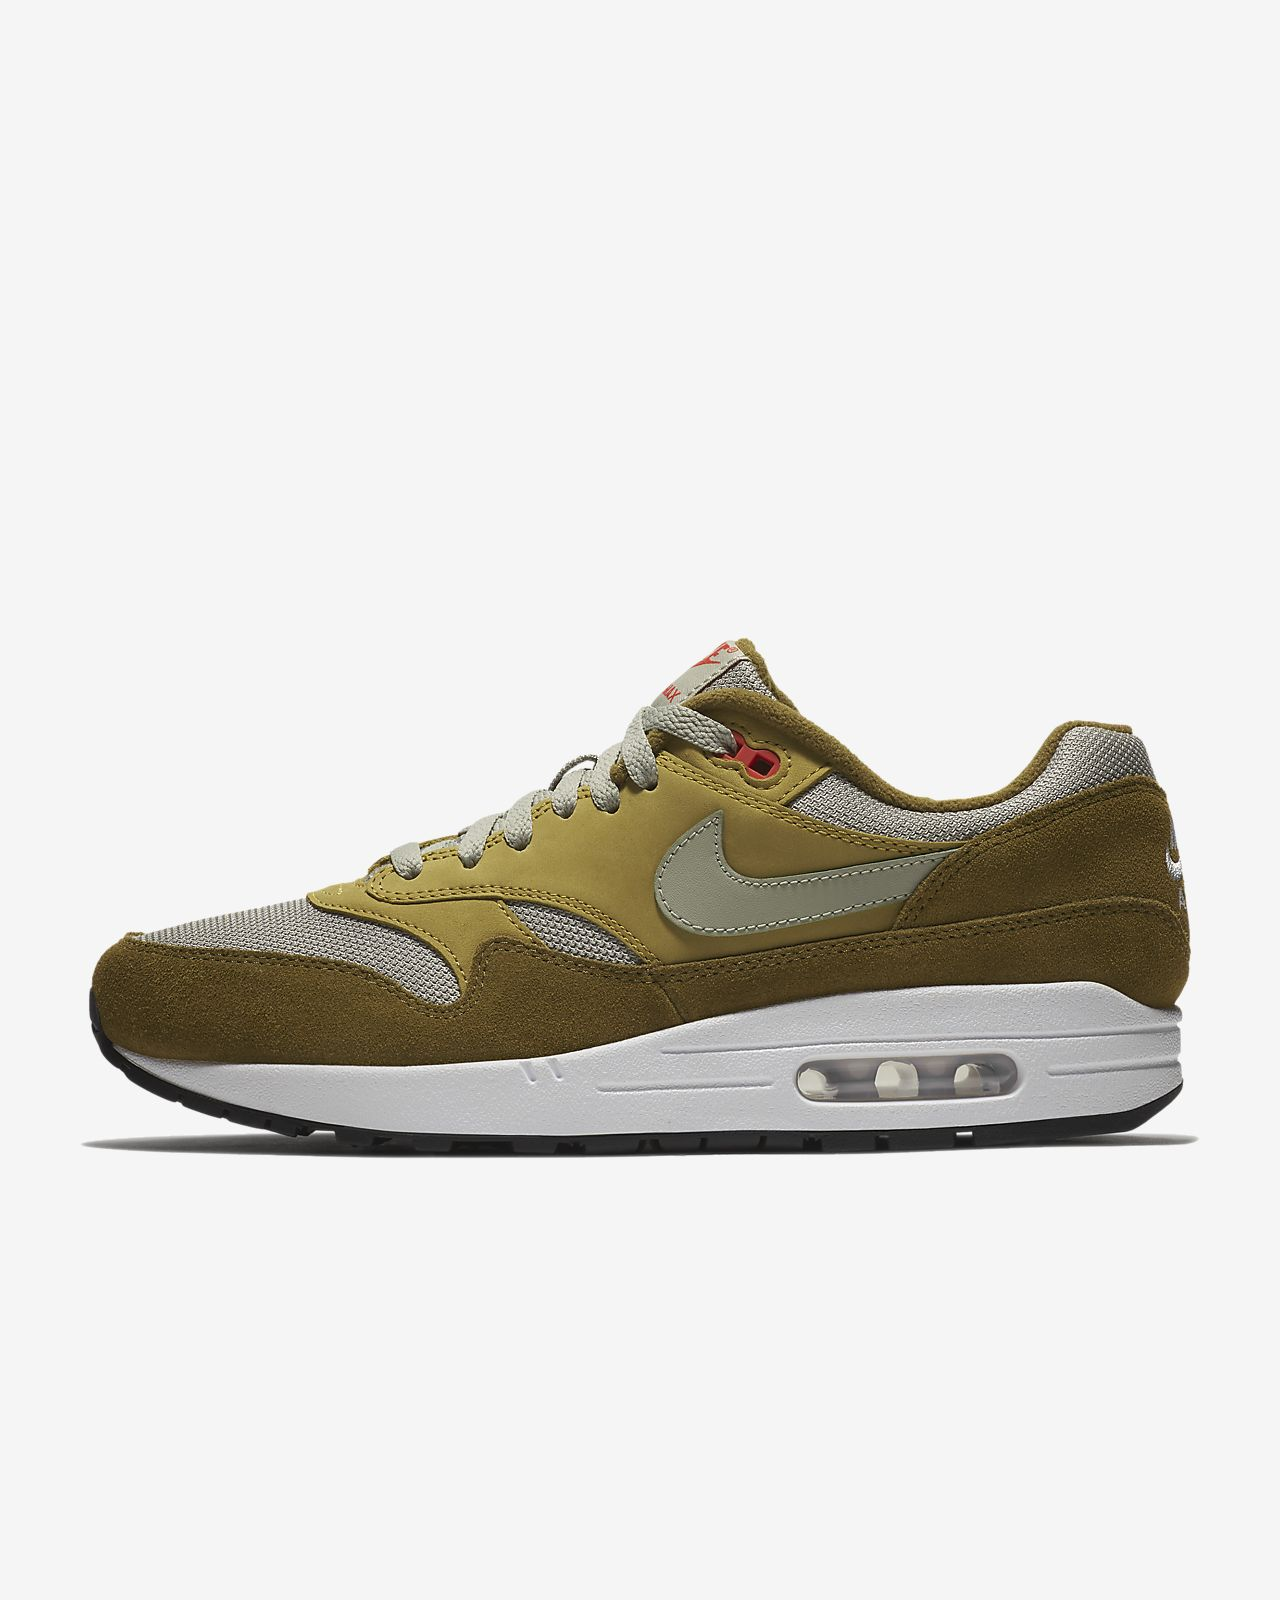 e7279e9705db Nike Air Max 1 Premium Retro Men s Shoe. Nike.com AU